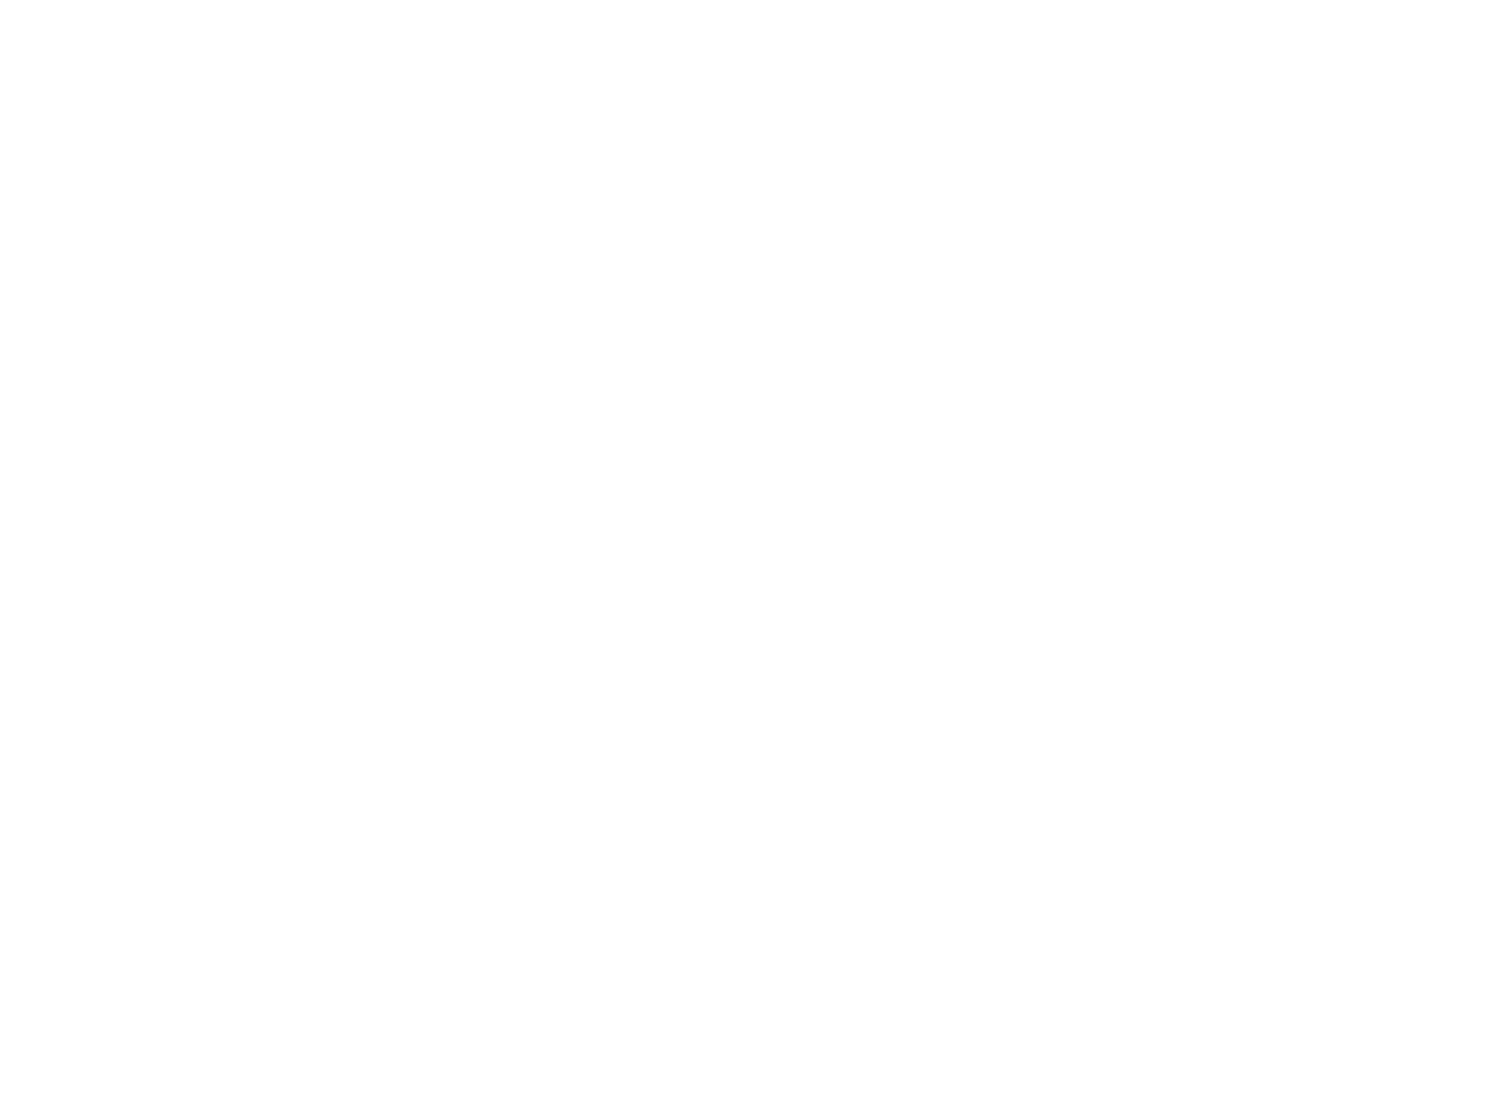 Lighthouse Data Science